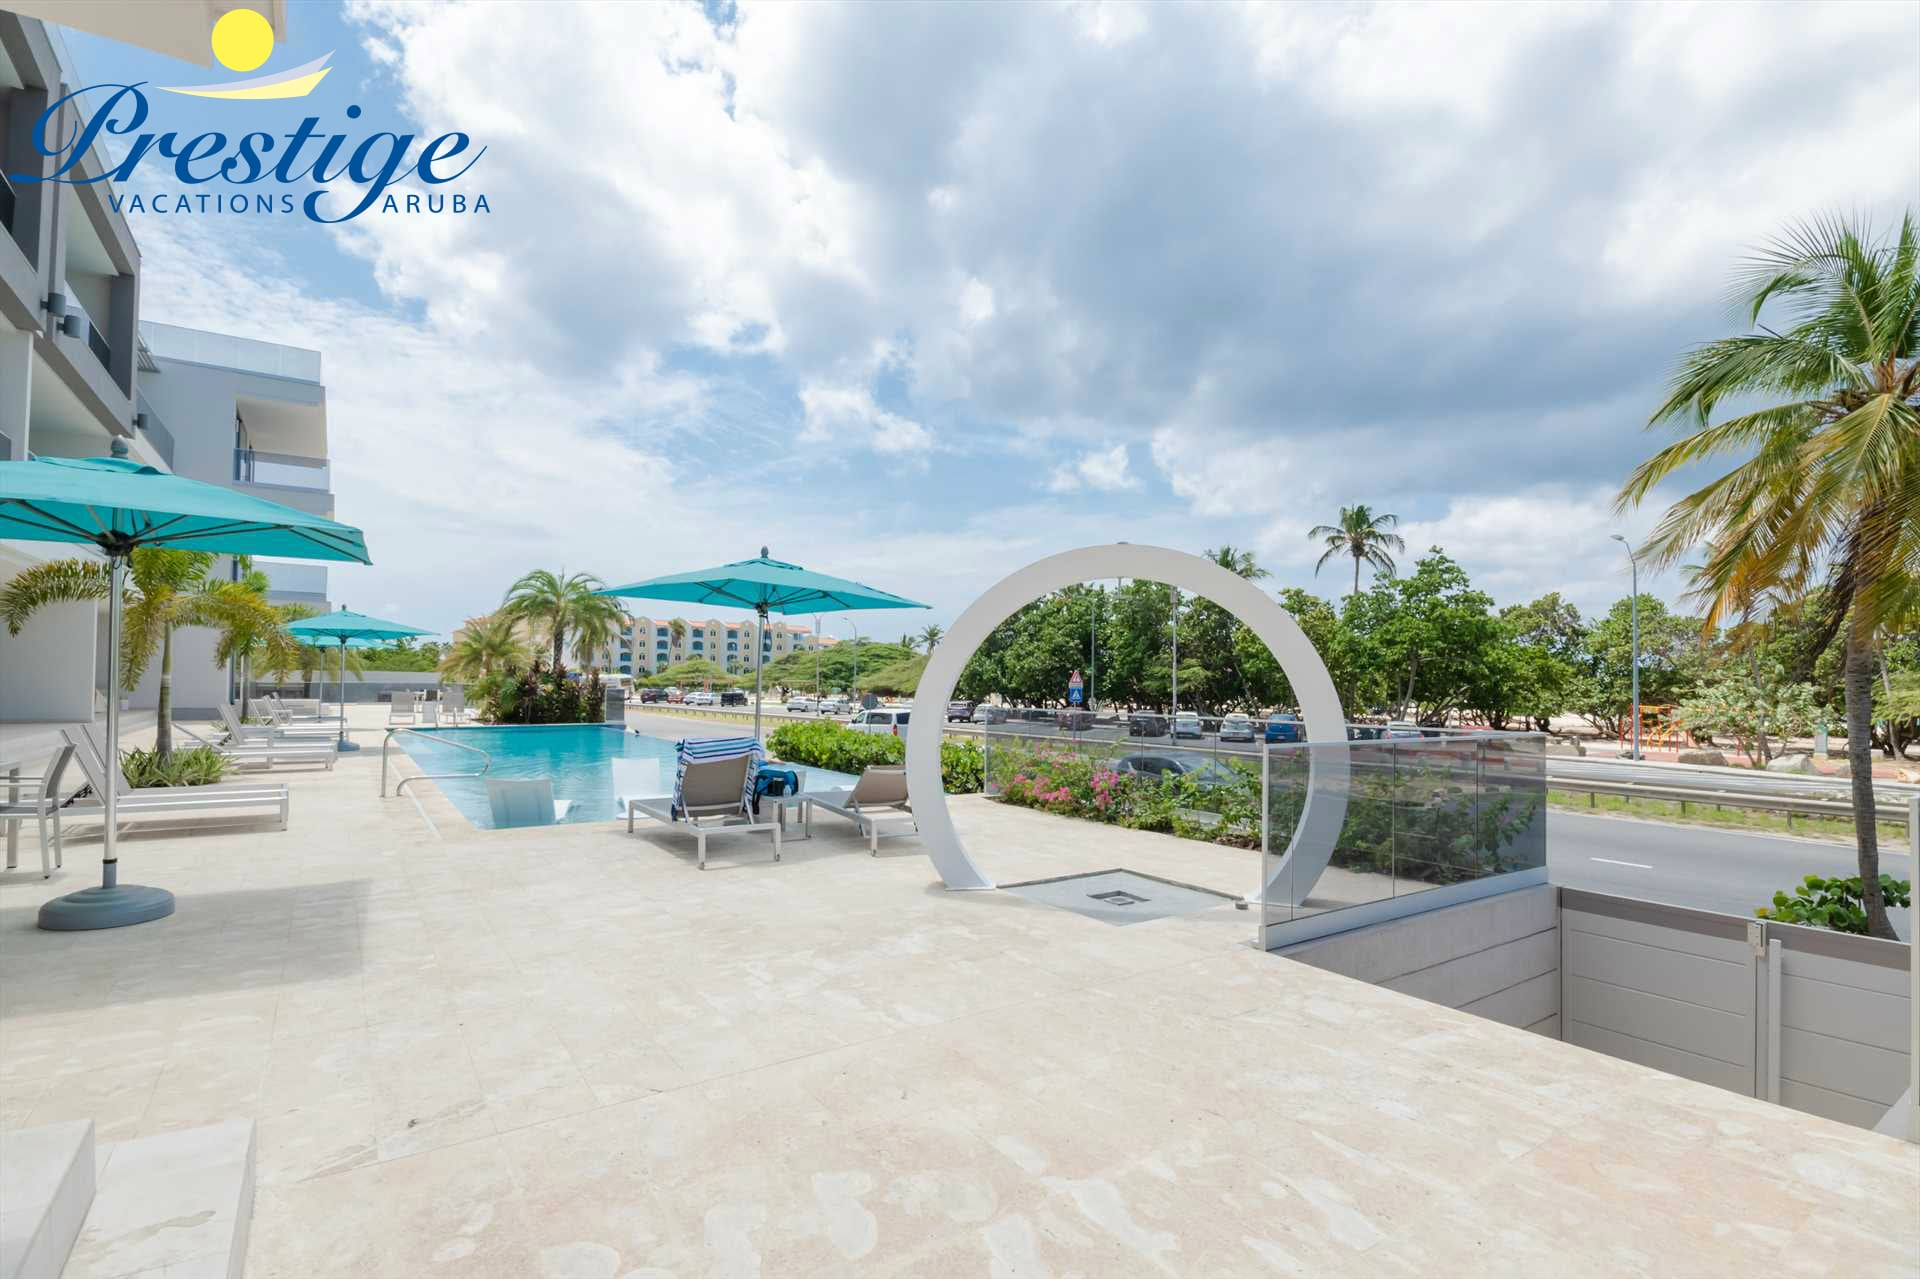 The resort beachfront pool area with infinity-edge swimming pool, a stunning O-shaped outdoor shower, and a beach access gate